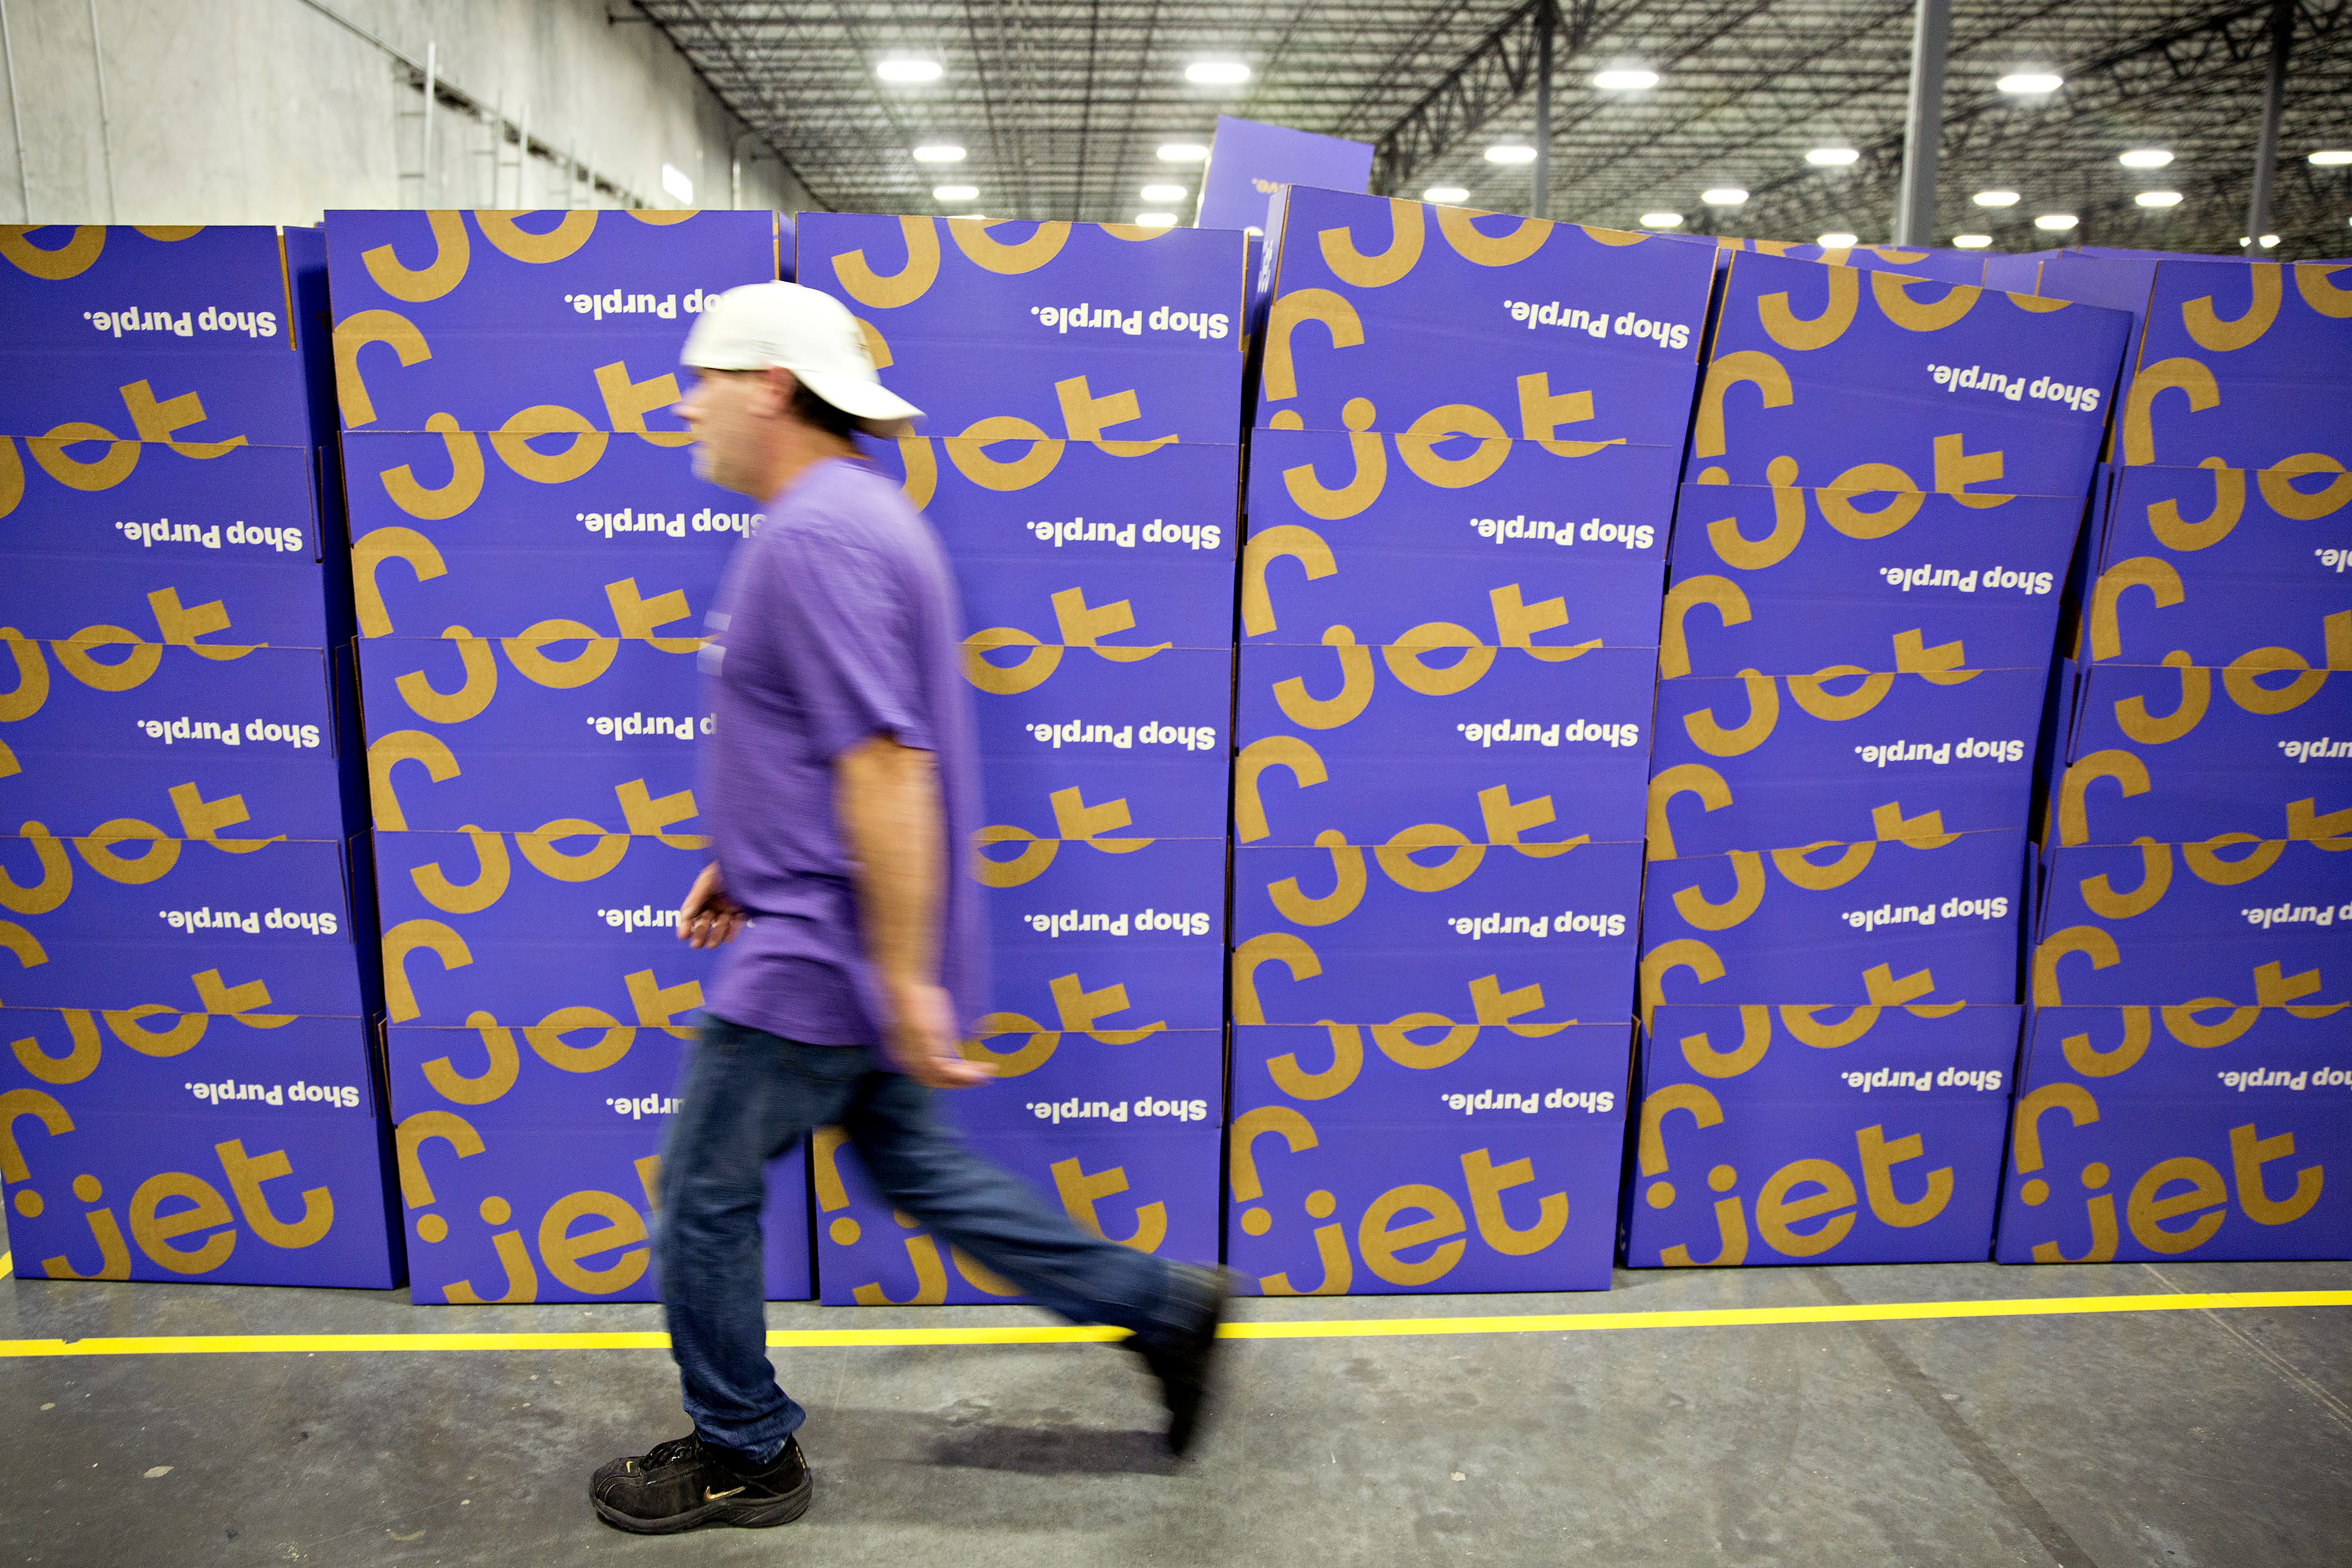 An employee walks past a stack of empty boxes at the Jet.com Inc. fulfillment center on Cyber Monday in Kansas City, Kansas, U.S., on Monday, Nov. 30, 2015. Online sales on Cyber Monday may rise at least 18 percent from a year earlier, slower growth than during the holiday weekend, as consumers start their Internet shopping earlier, according to forecasts by International Business Machines Corp. Photographer: Daniel Acker/Bloomberg via Getty Images